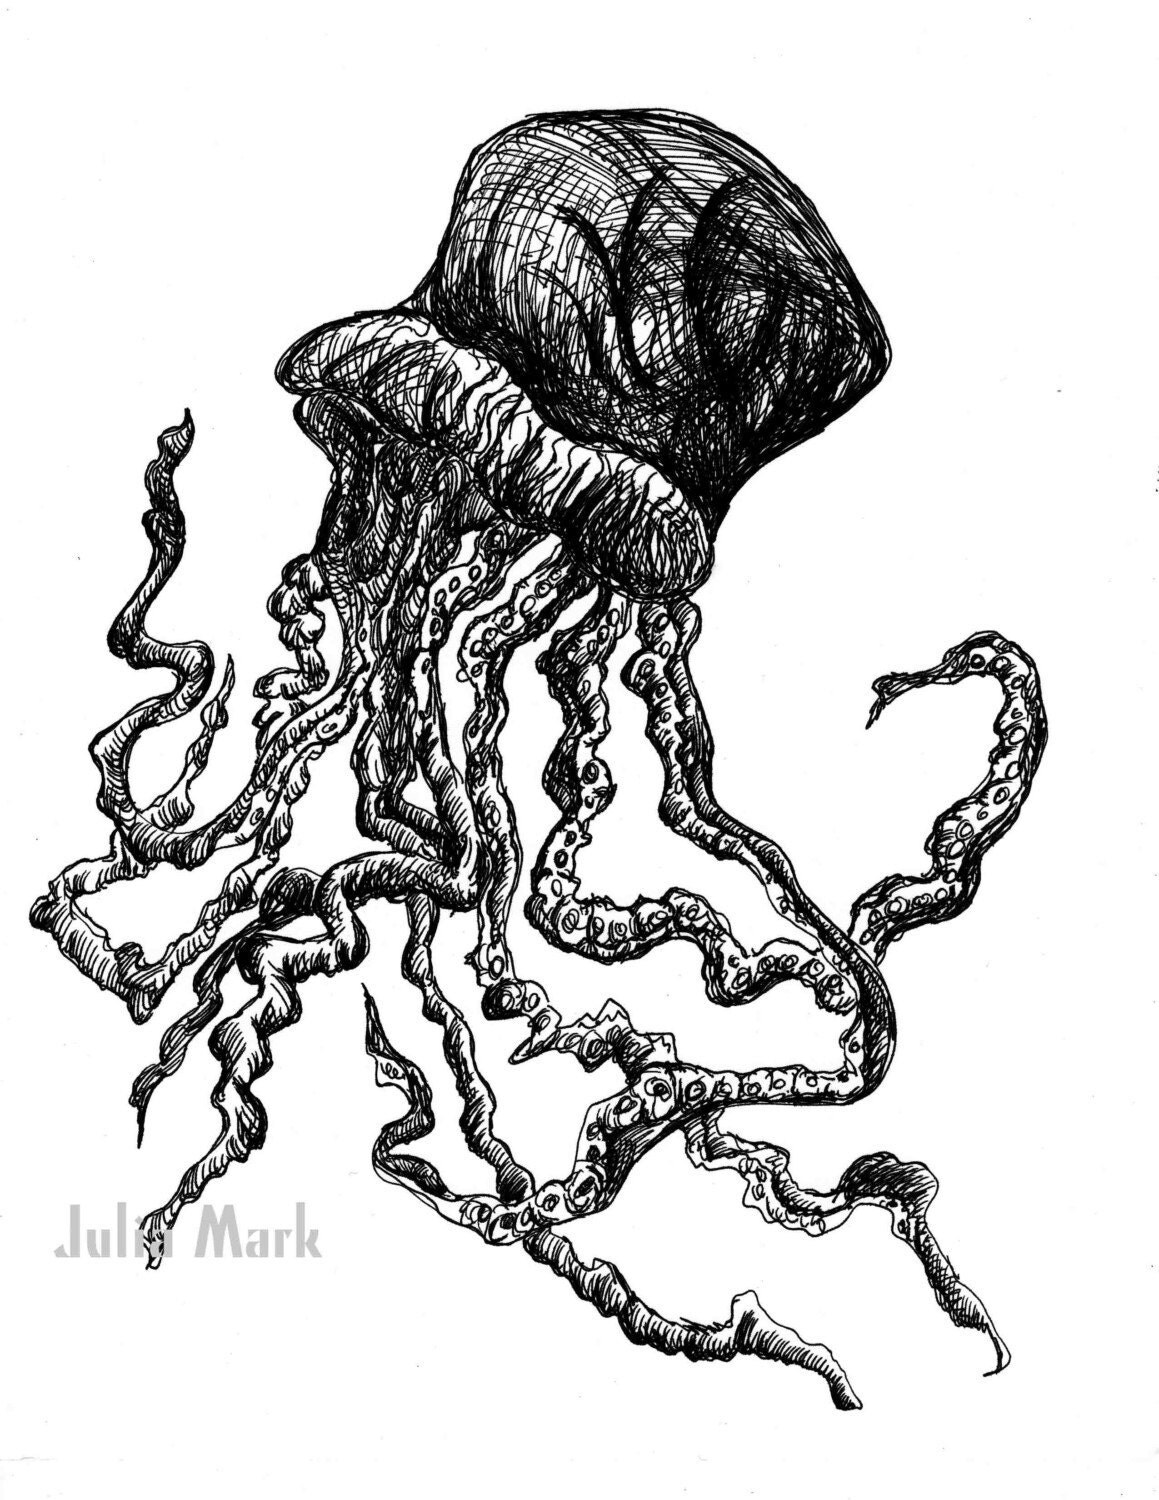 It's just a photo of Insane Jellyfish Ink Drawing